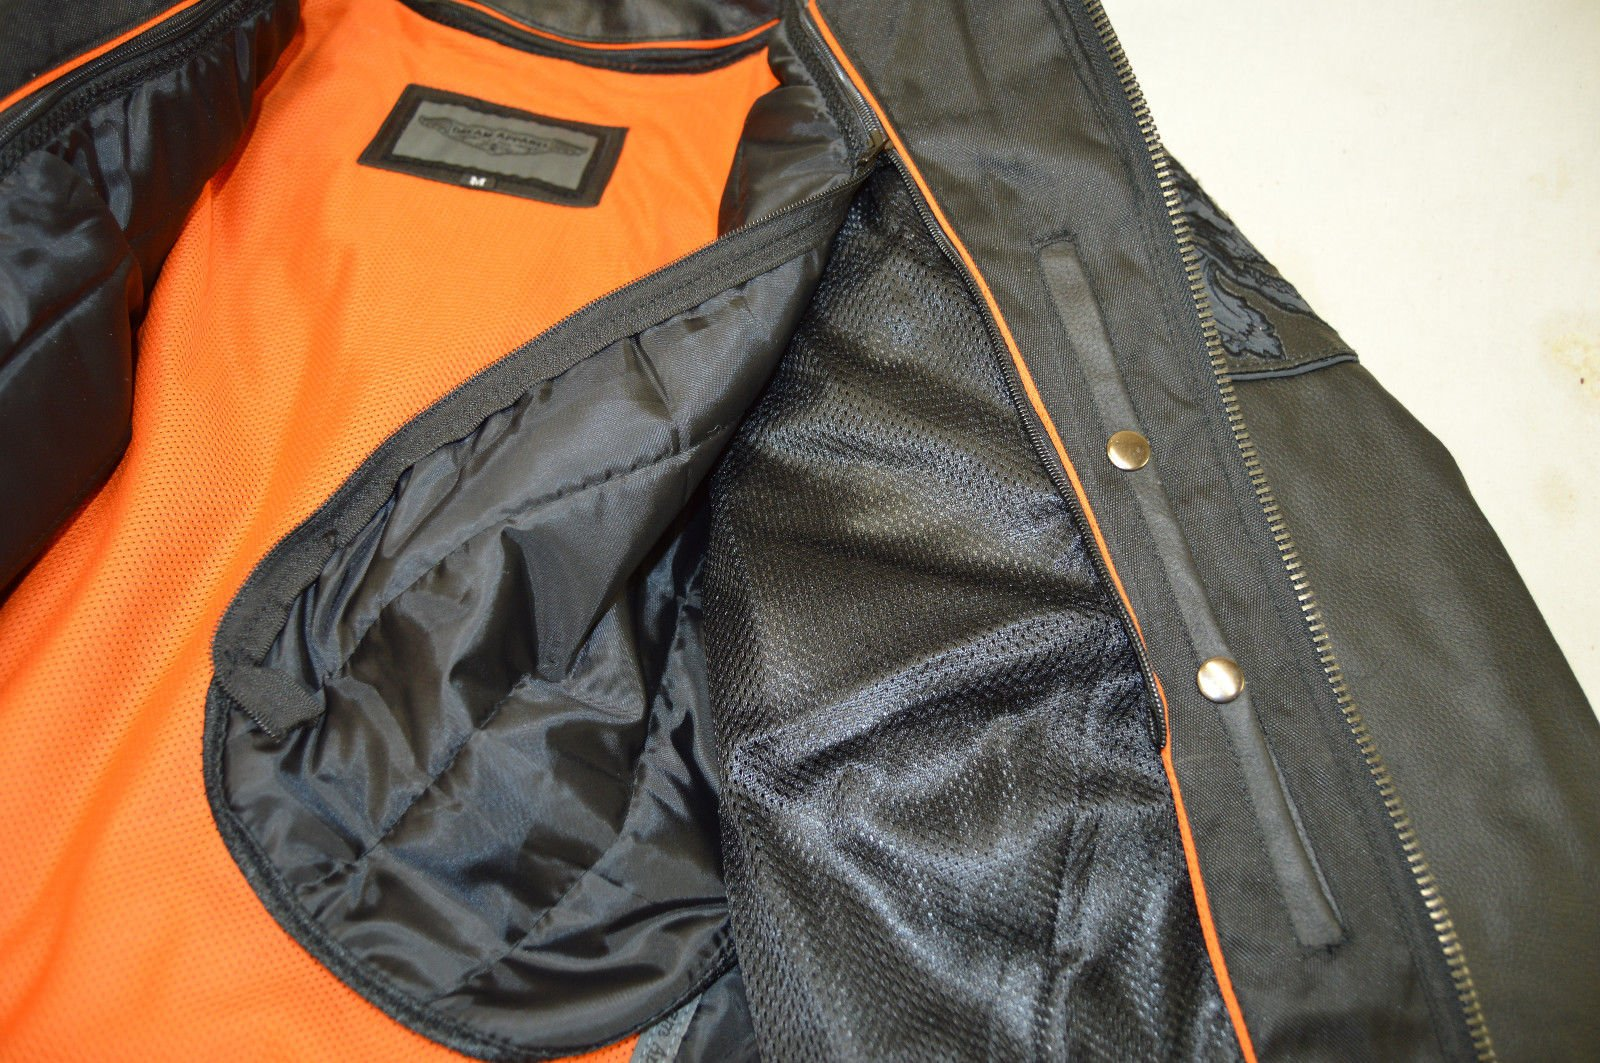 Dream Men's Motorcycle Riding Blk Reflective Skull Leather Jacket Big Sizes Upto 10xl (6XL Regular) by Dream (Image #6)